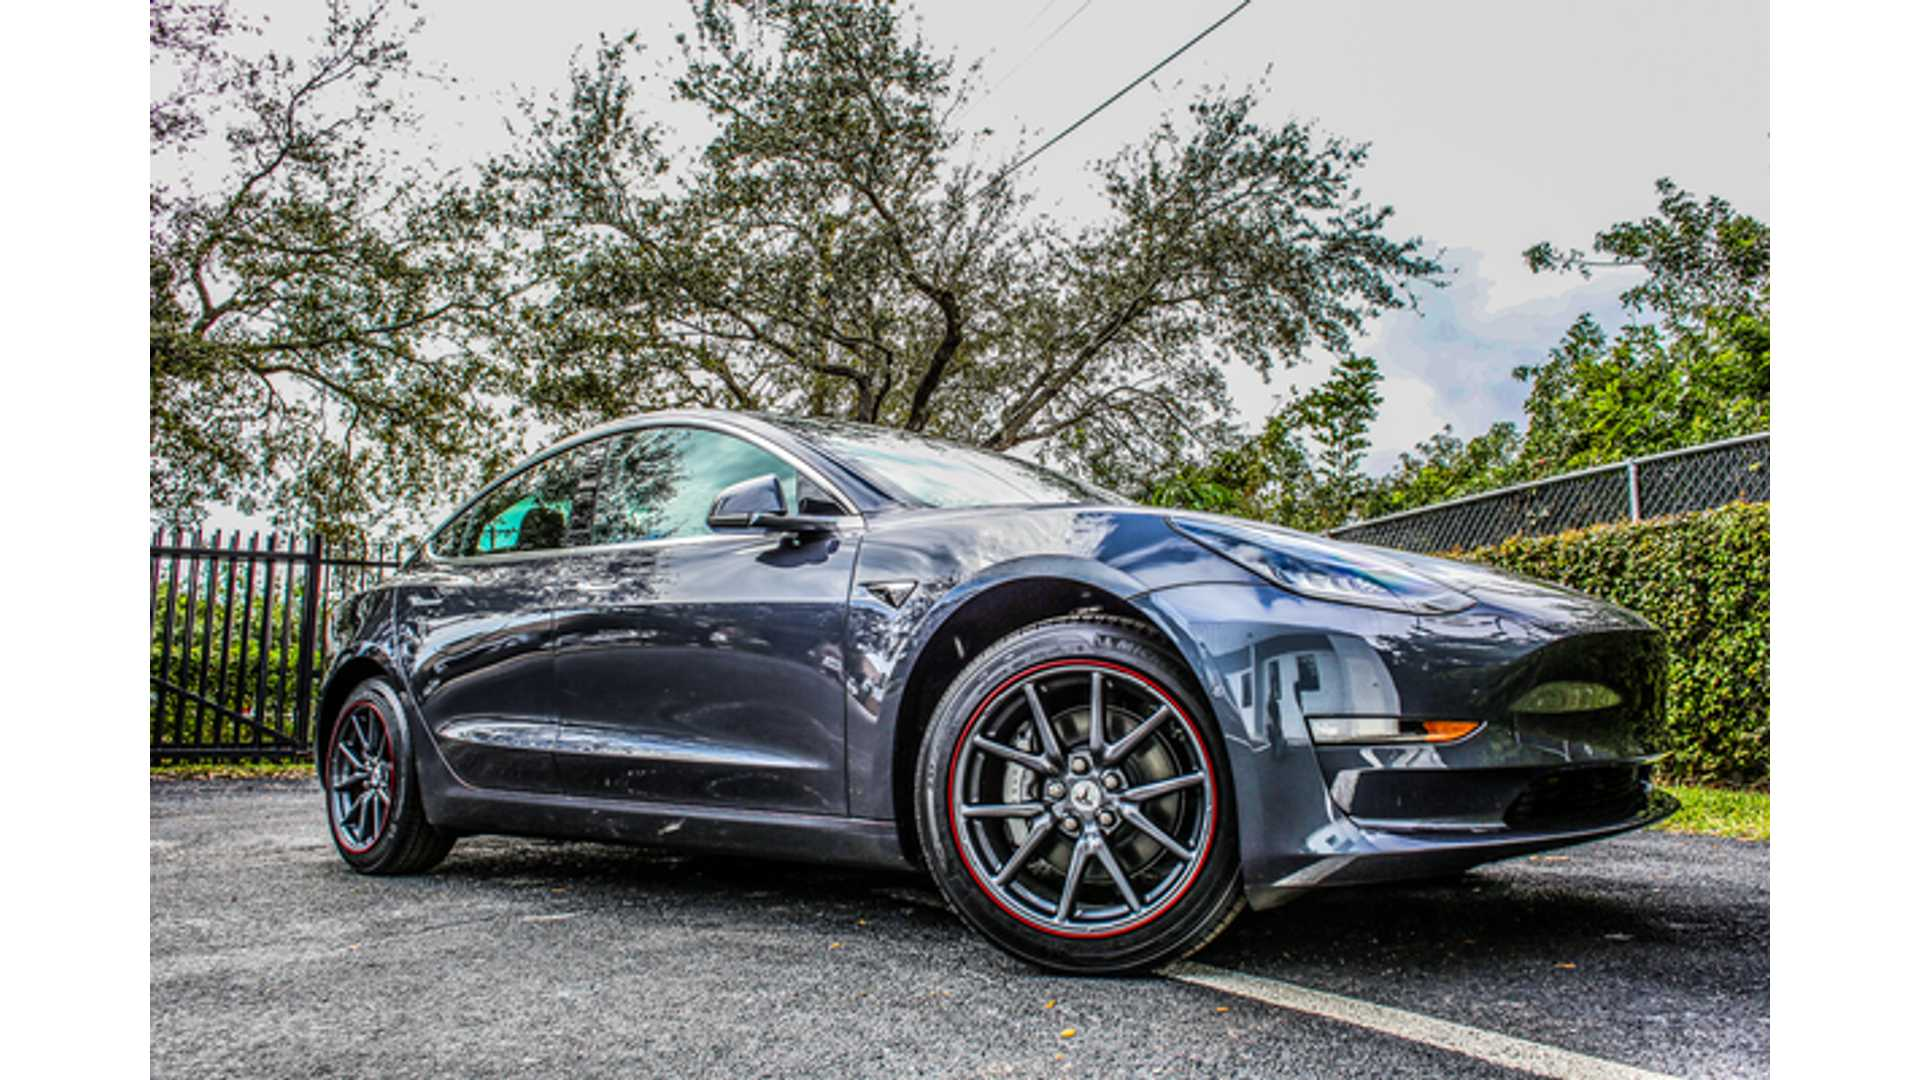 Tesla Model 3 Review: What The Big Publications Missed